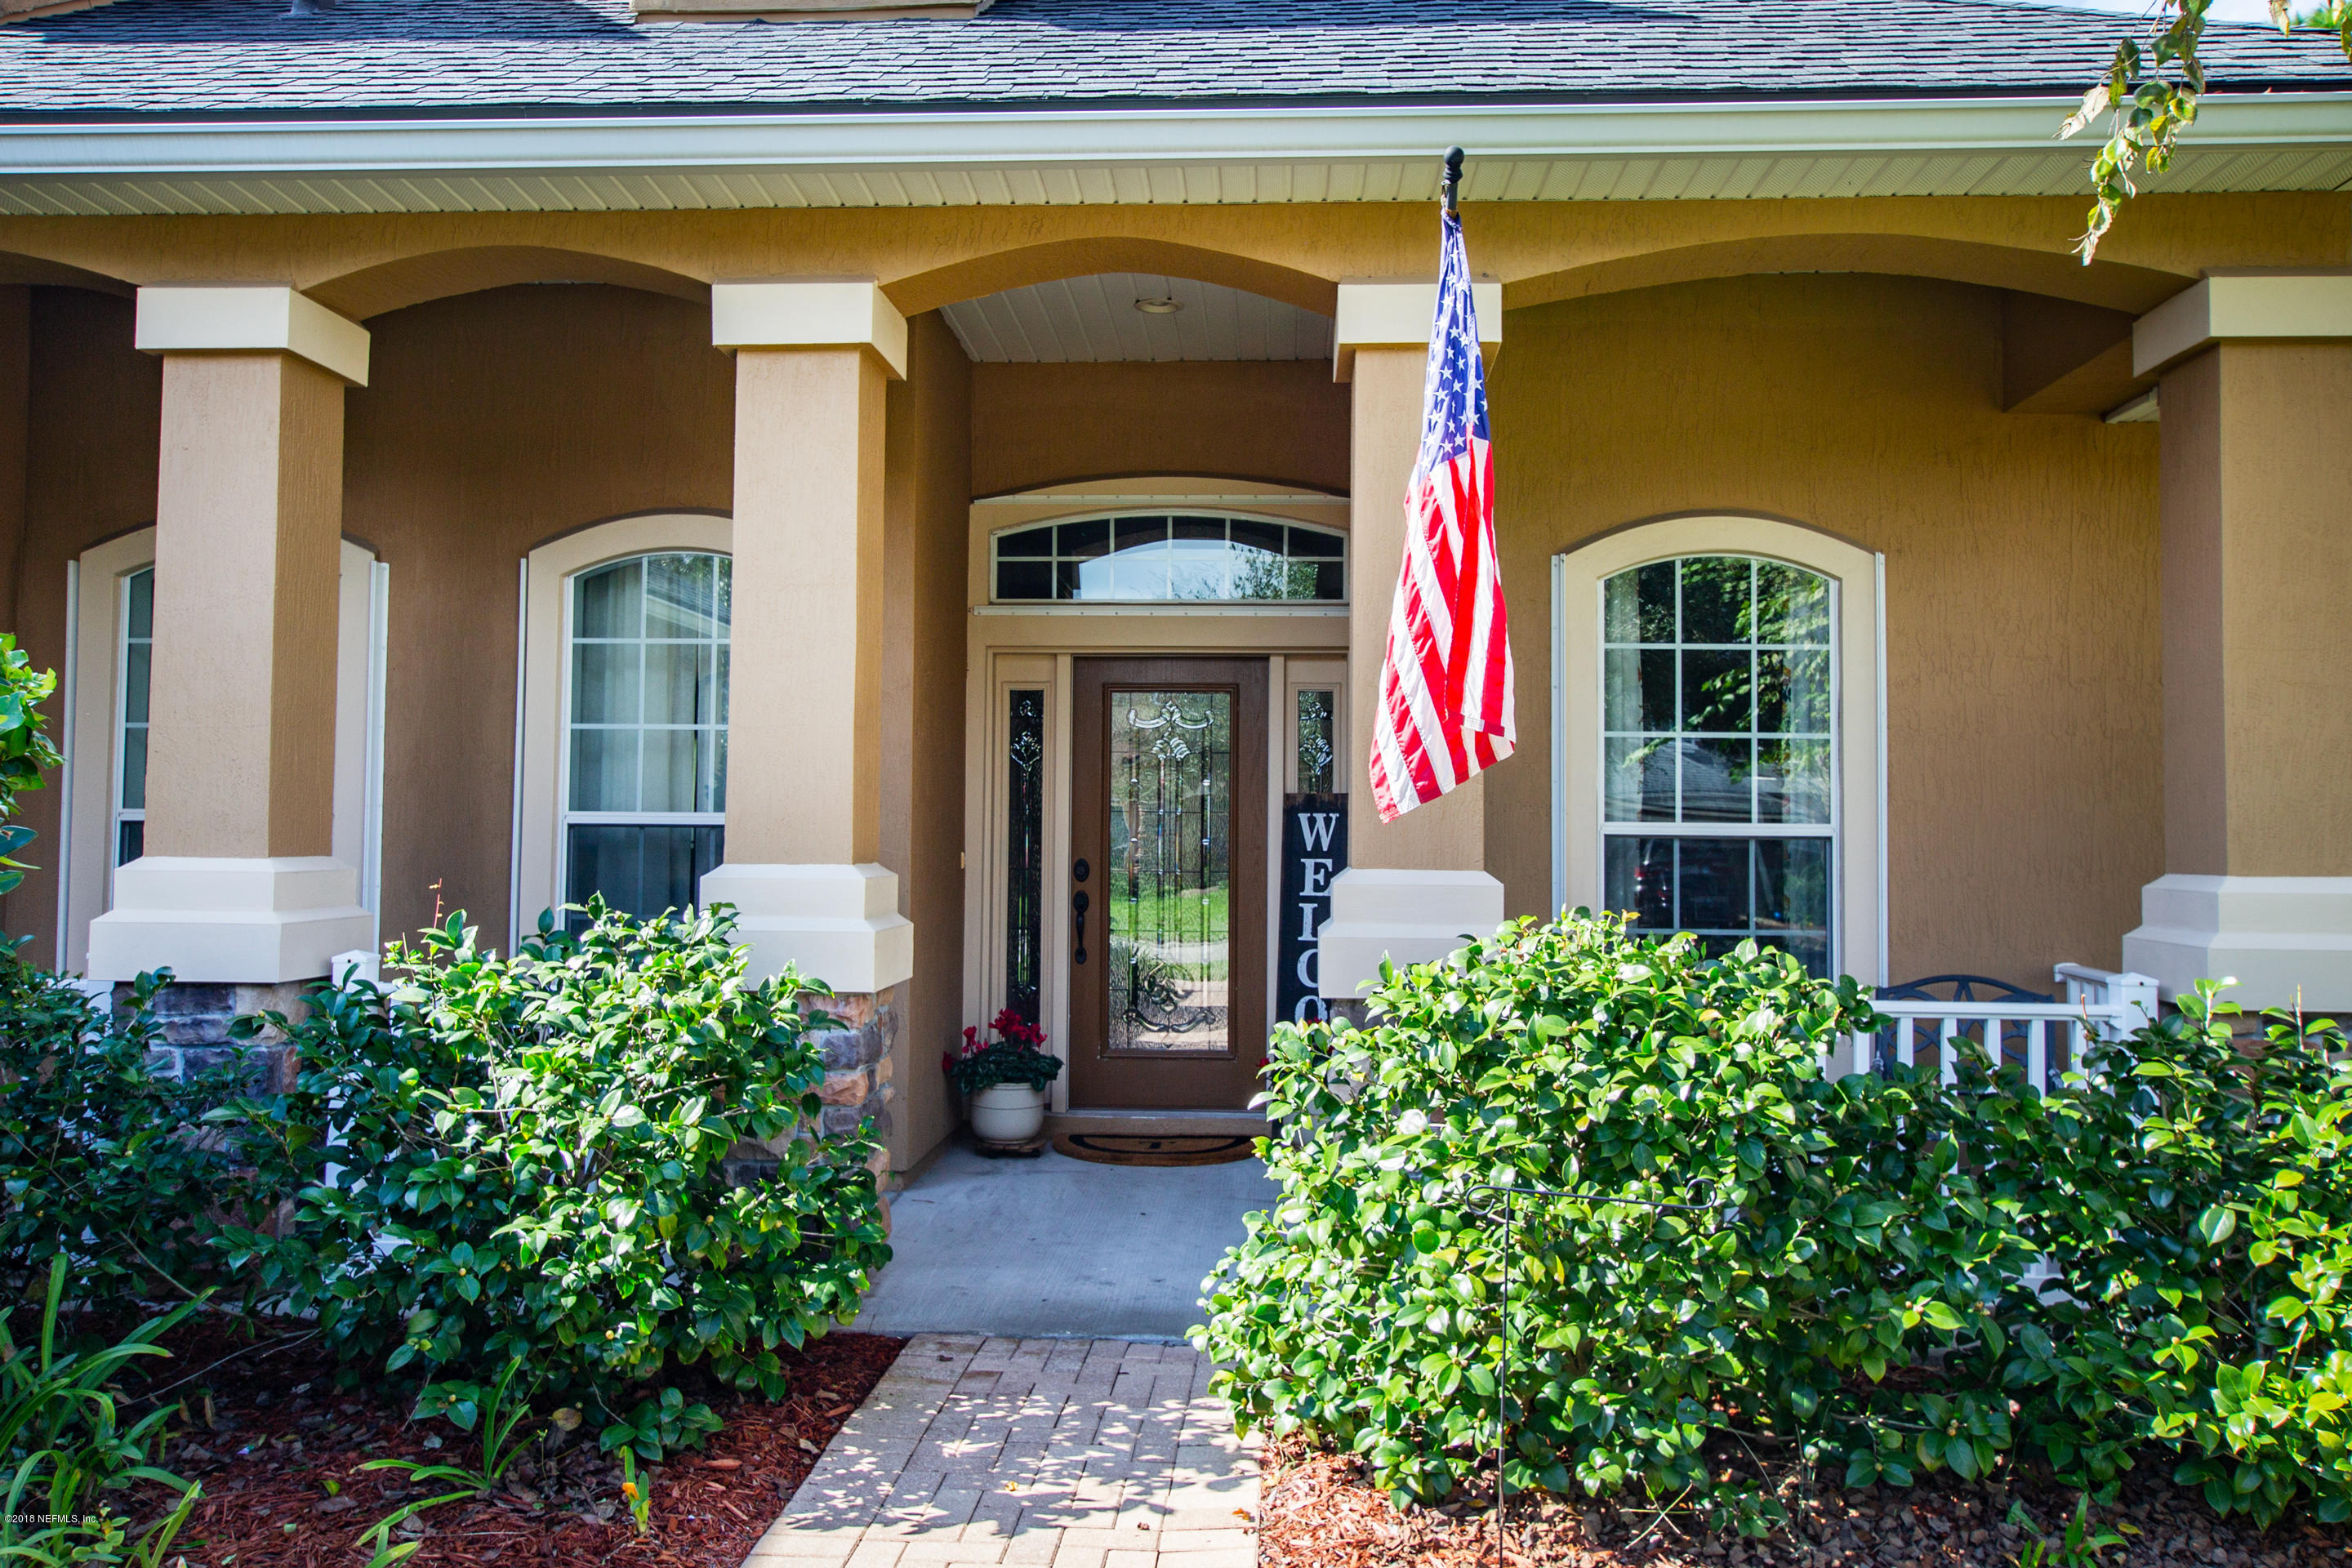 188 KENMORE, PONTE VEDRA, FLORIDA 32081, 4 Bedrooms Bedrooms, ,3 BathroomsBathrooms,Residential - single family,For sale,KENMORE,966971